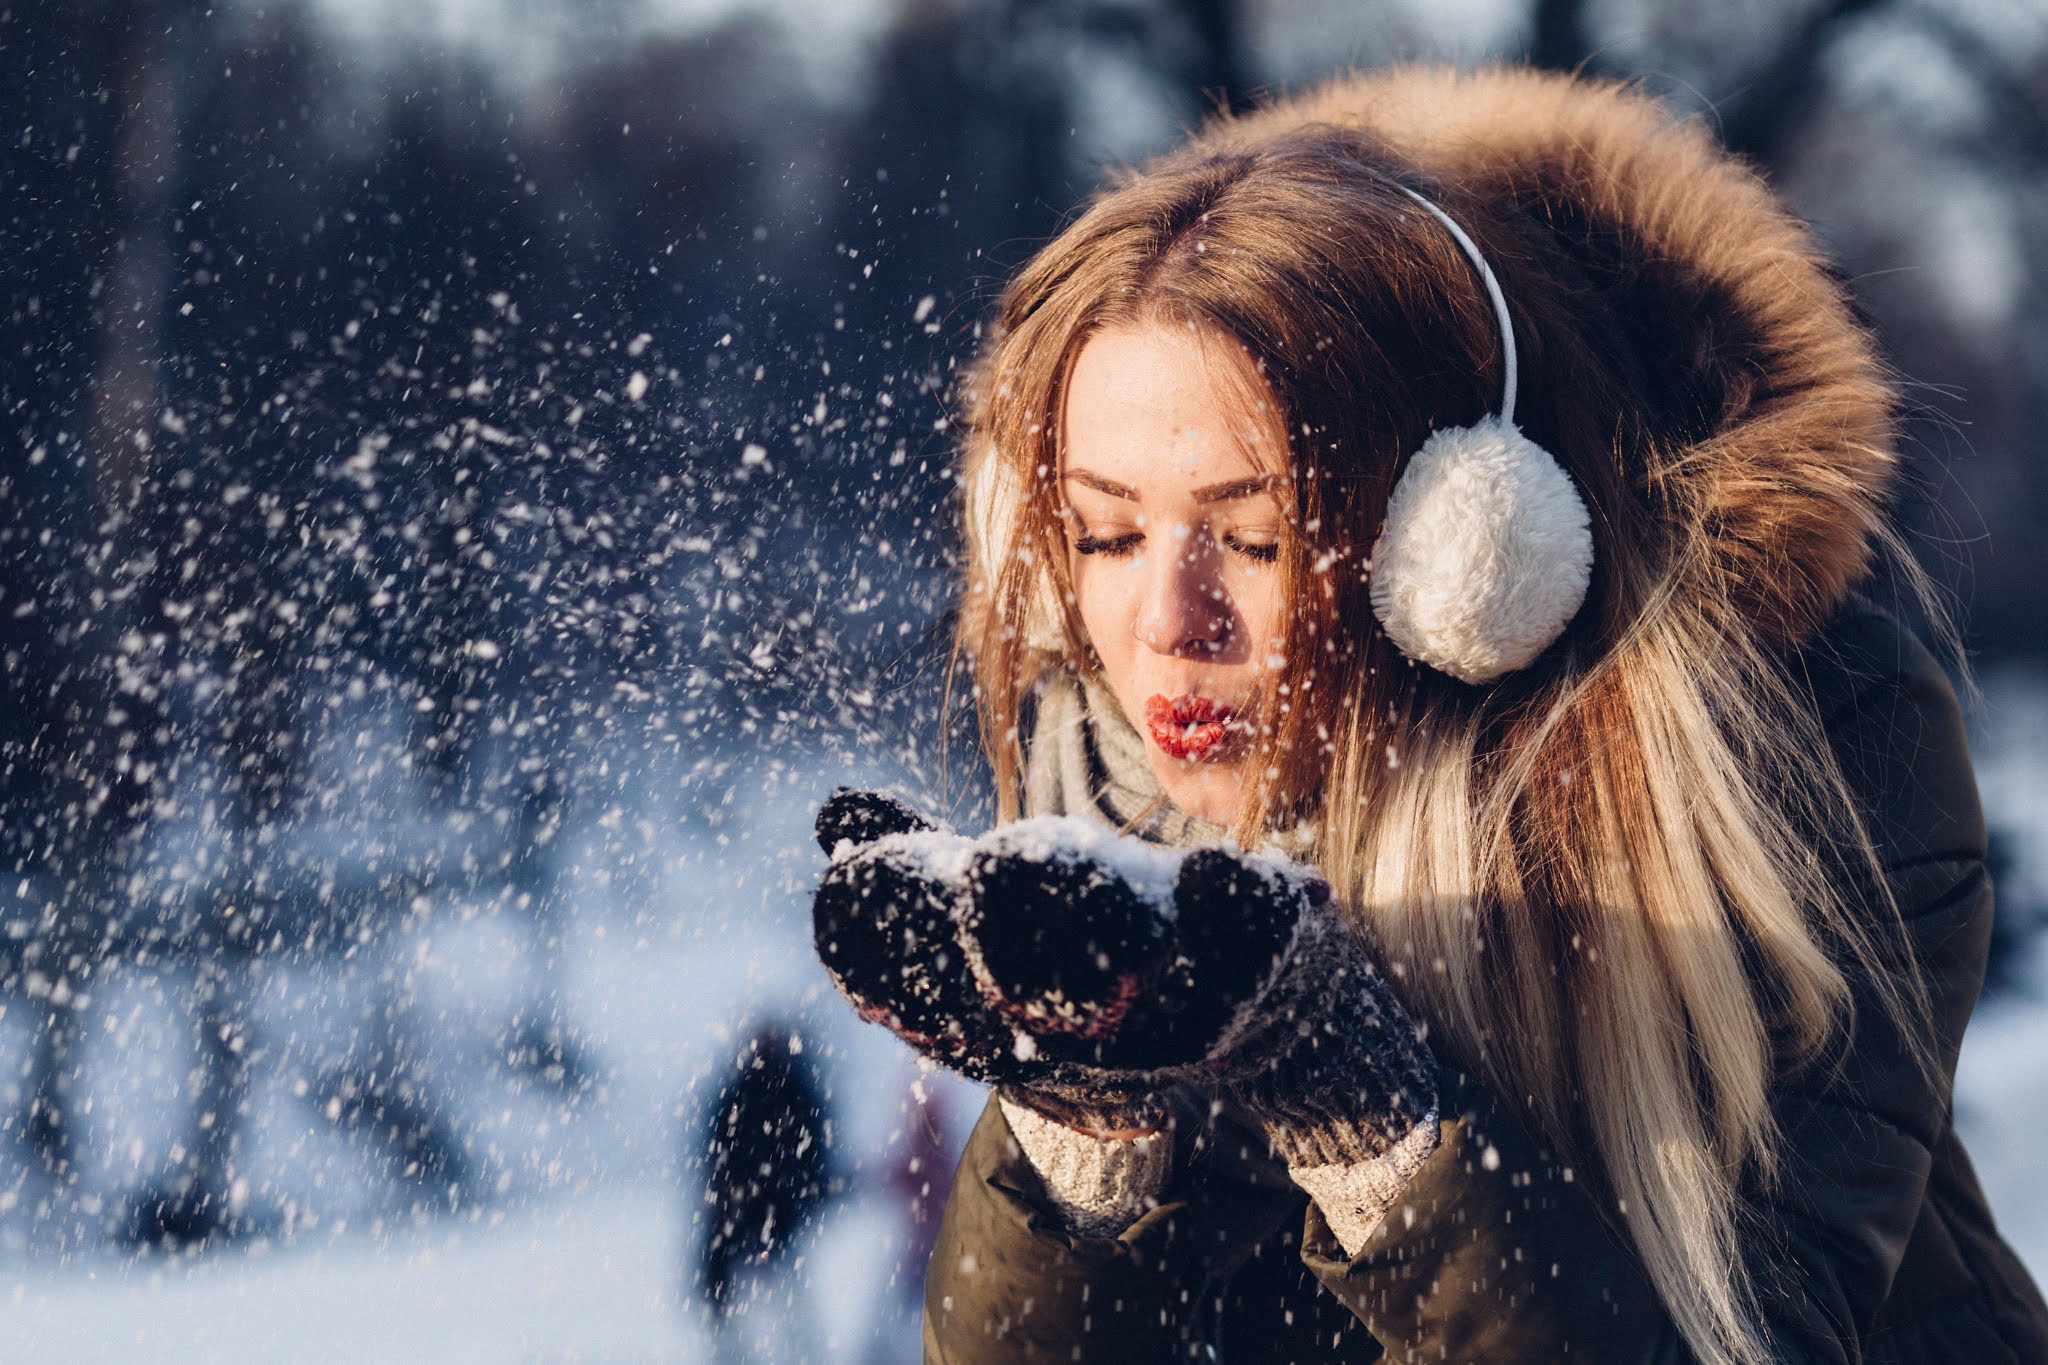 Girl in winter fur outfit  in the snow